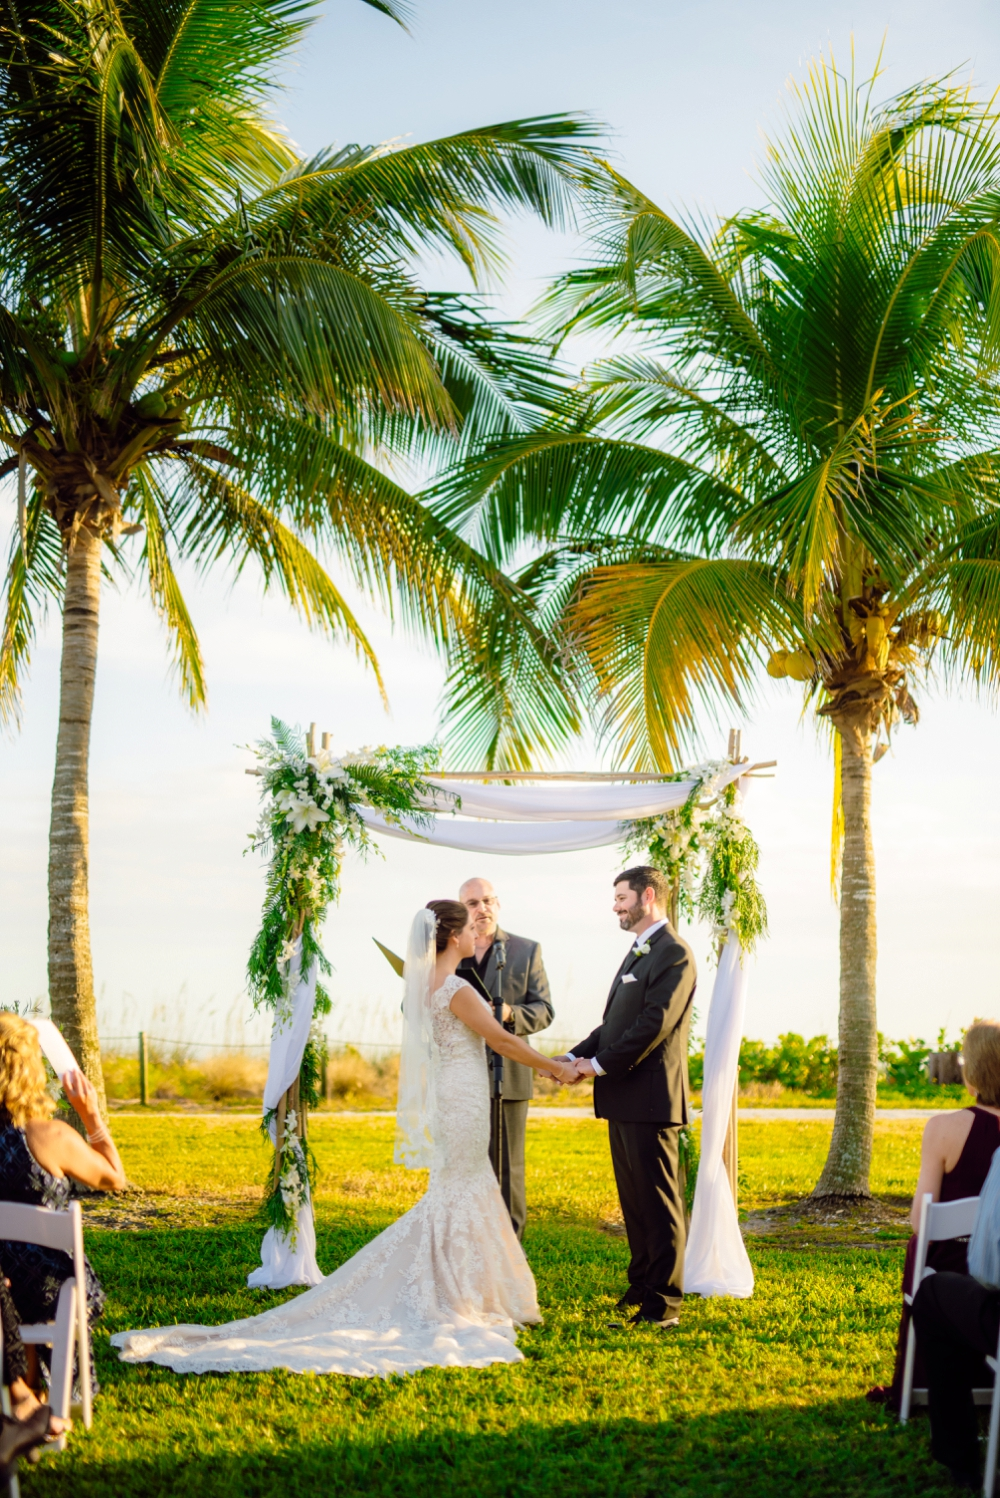 Matt Steeves Photography Casa Ybel Weddings Floral Artistry Sanibel_0075.jpg